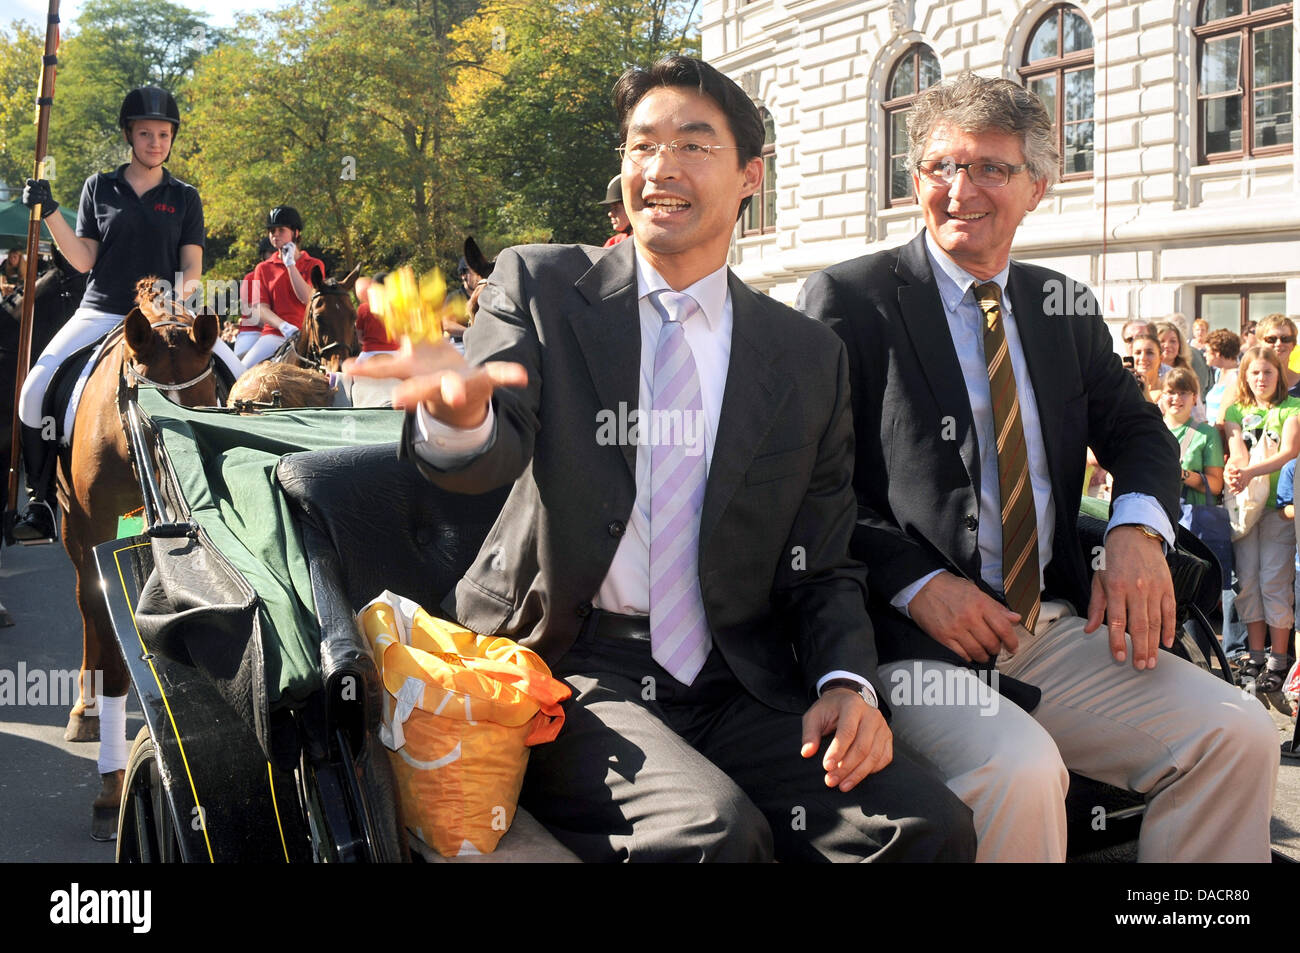 Economy Minister Philipp Roesler (L) and Oldenburg's mayor Gerd Schwandner head the parade of the grocer's - Stock Image